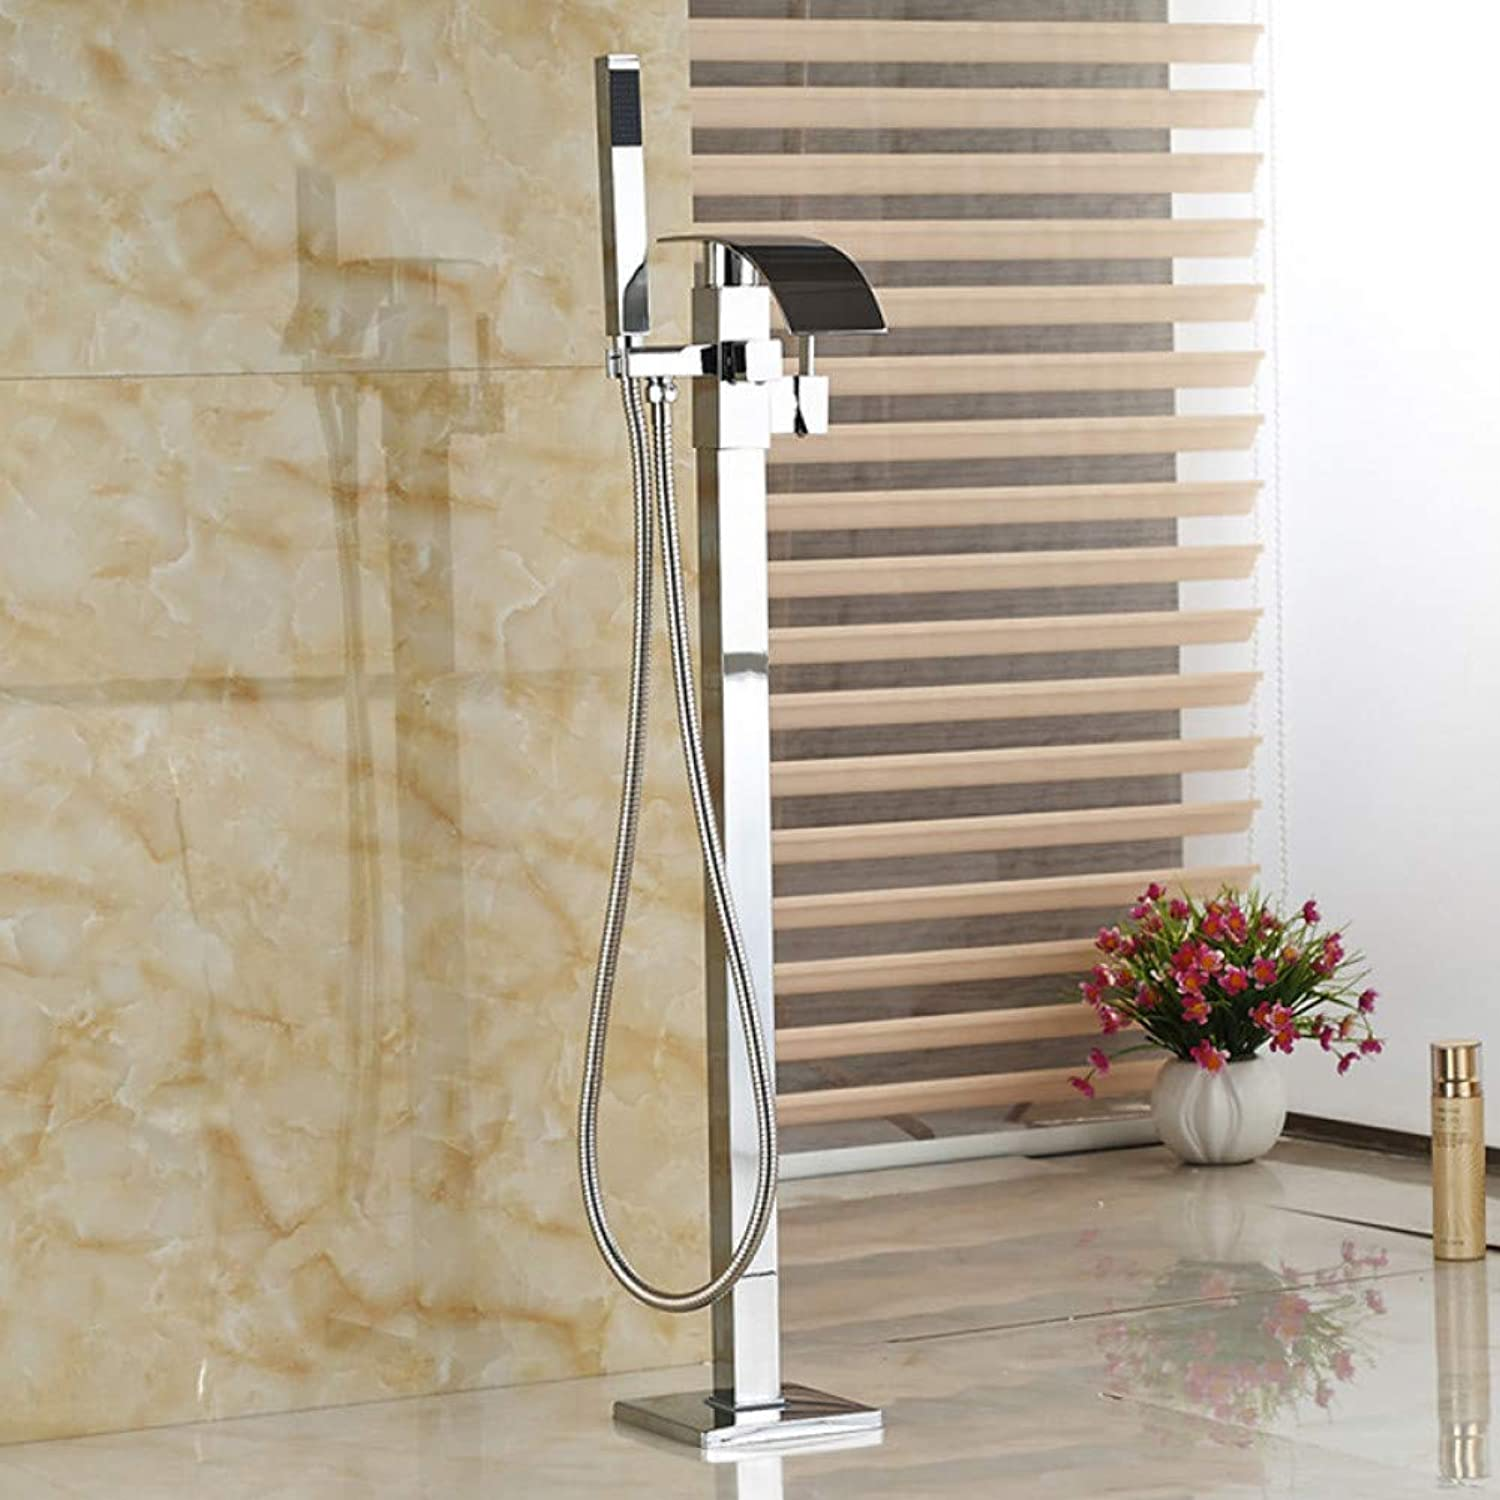 HUASAA Electroplated Bathtub Mixer Free standing Clawfoot Bath Tub Filler Faucet Floor mounted Waterfall Spout